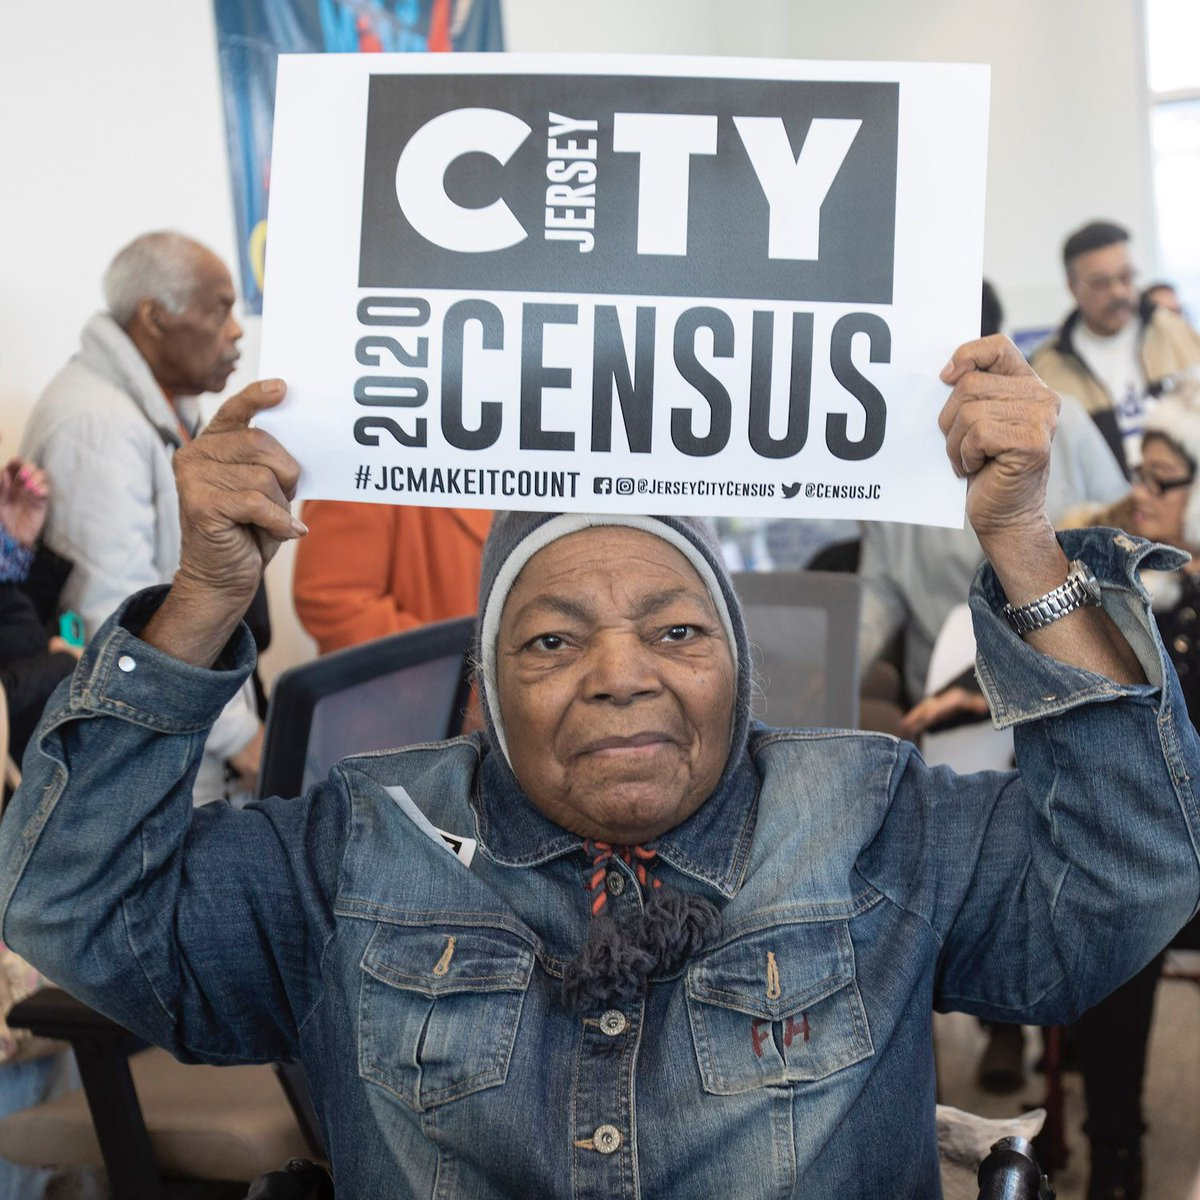 City clinics and #SeniorHealth programs receive federal funding based on how many #seniors live in Jersey City. For the sake of good health, fill out the #2020Census and #makeitcount! @HealthierJC   https://t.co/J5cnsN9YVN https://t.co/Vq5MSwRppg